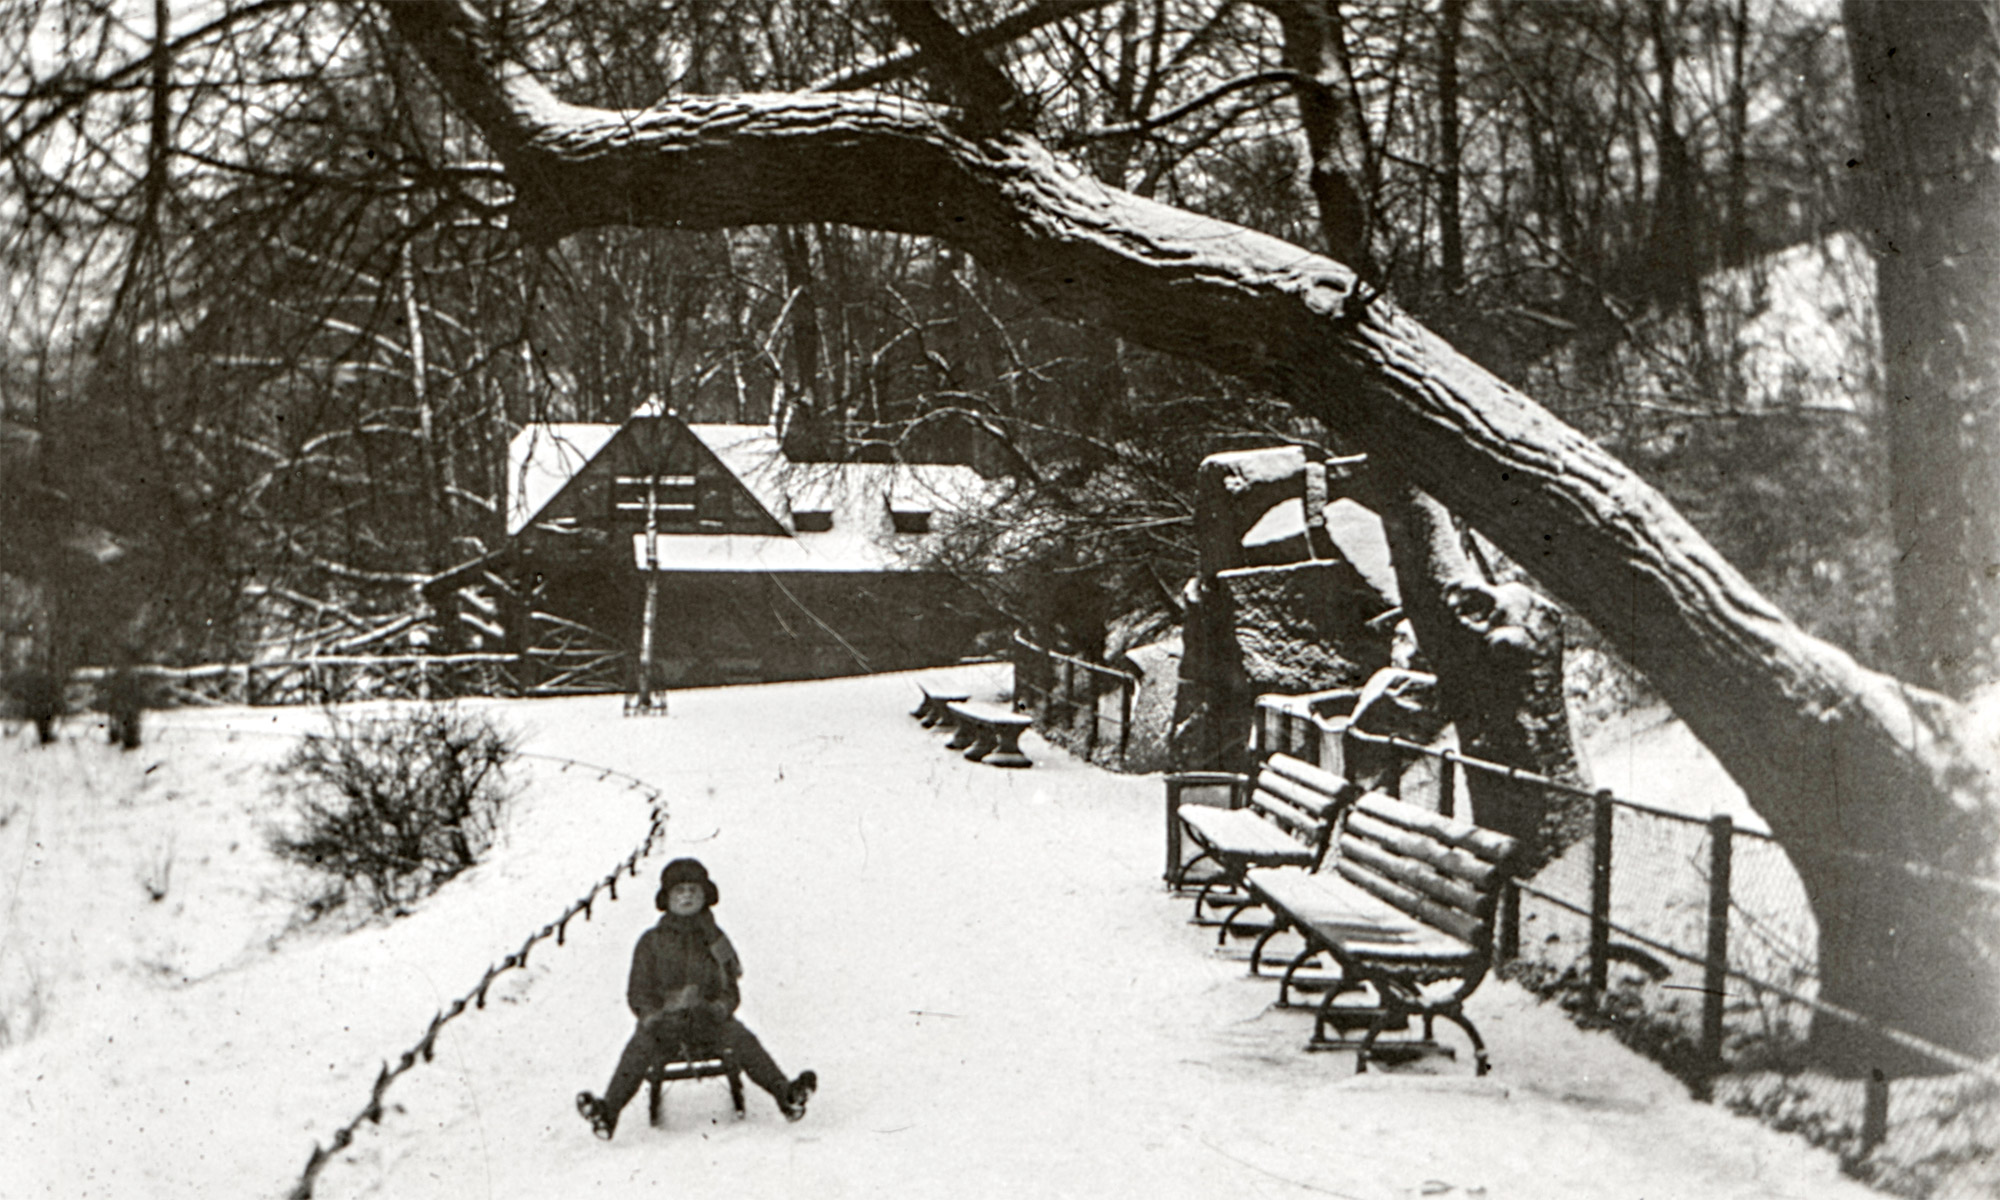 Mystery Box #1: Winter in Germany, mid-1930s